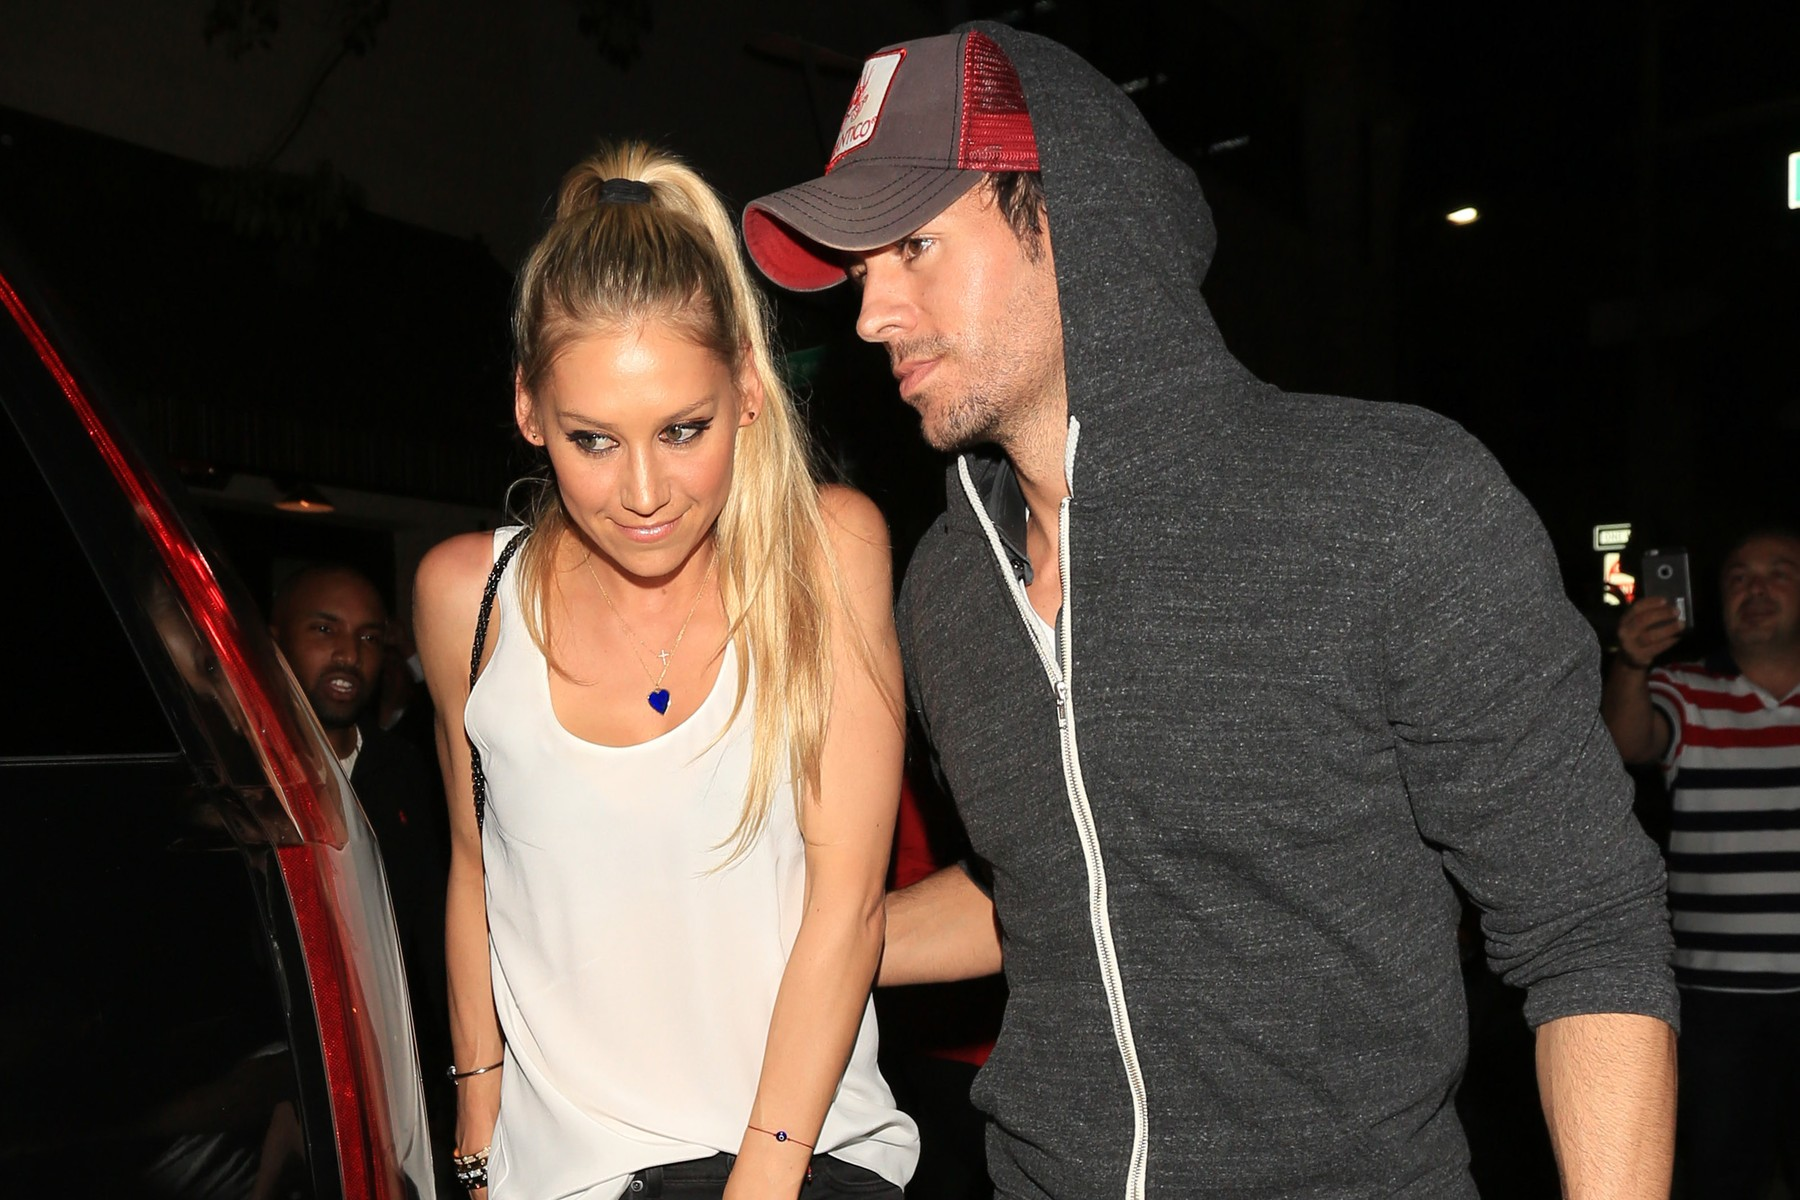 Beverly Hills, CA - Singer, Enrique Iglesias and Anna Kournikova are spotted leaving The Palm after a romantic date night. The pair are greeted by the chaos of fans and cameras hoping to get a glimpse of the couple. Iglesias is kind enough to sign autographs before leaving in his ride.       July 1, 2016, Image: 292935585, License: Rights-managed, Restrictions: NO Brazil, Model Release: no, Credit line: - / Backgrid USA / Profimedia